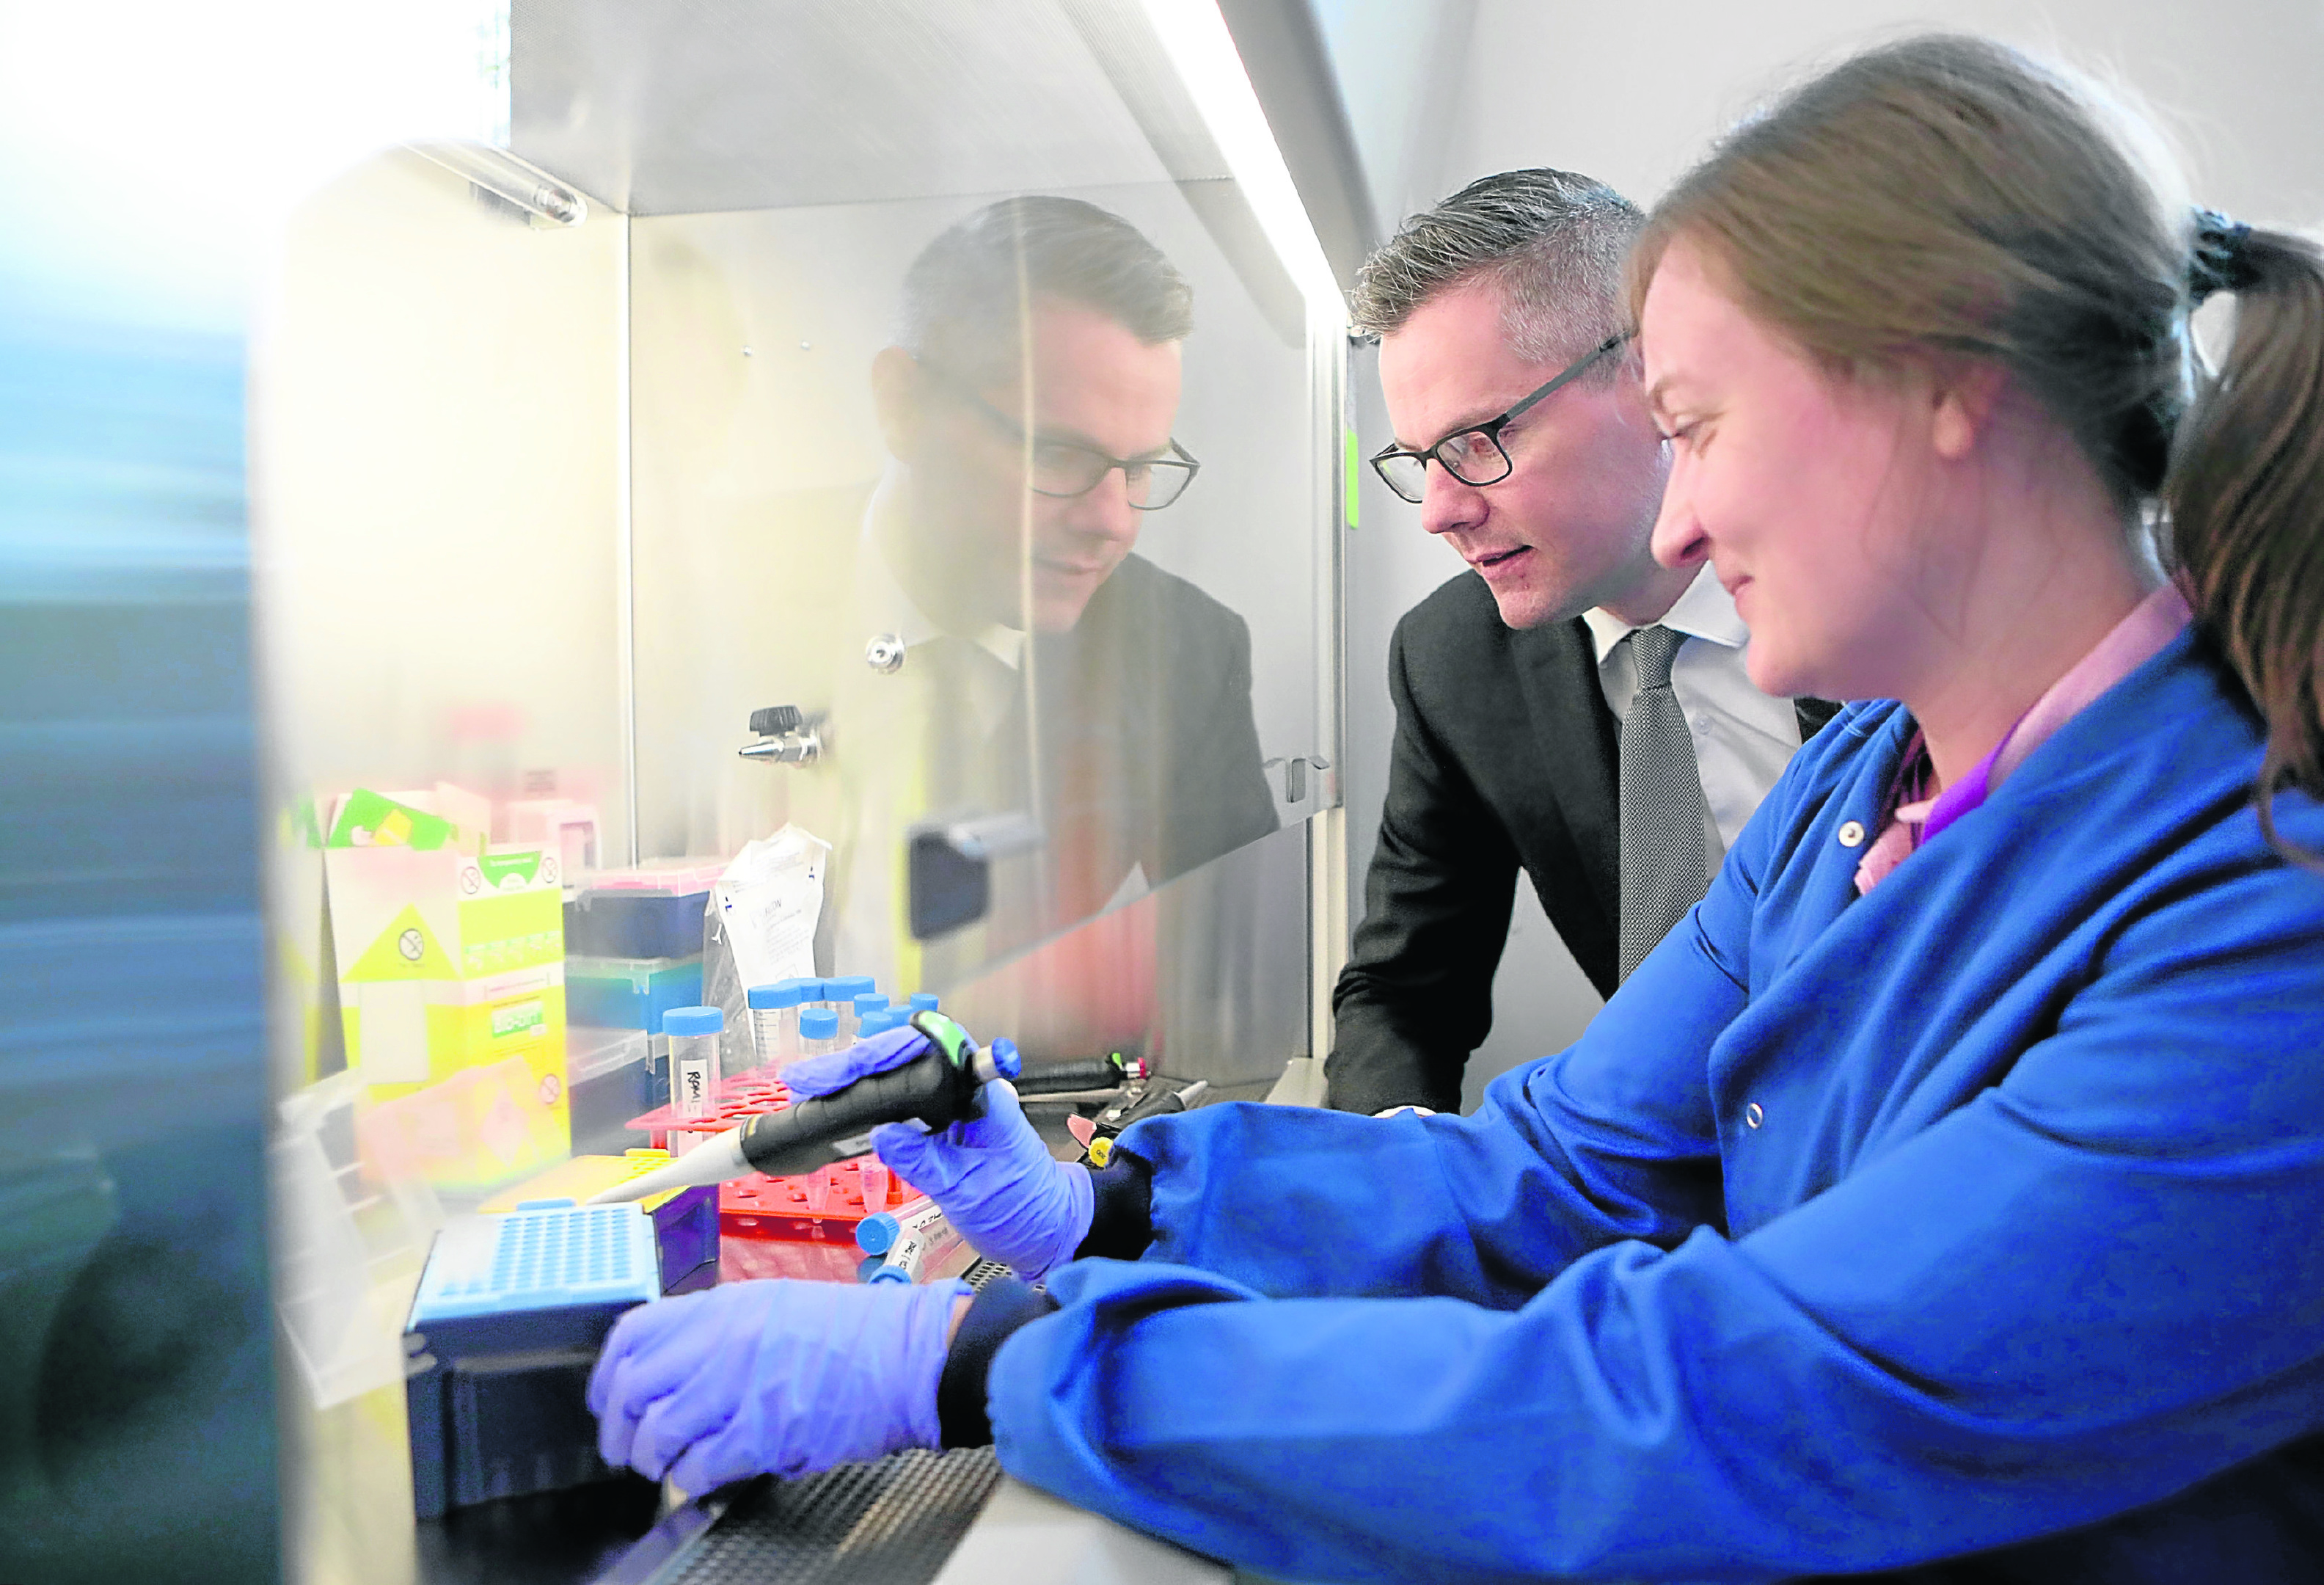 Finance Secretary Derek Mackay with Dr Joanne Hay during a visit to life sciences business, Aquila Biomedical, yesterday